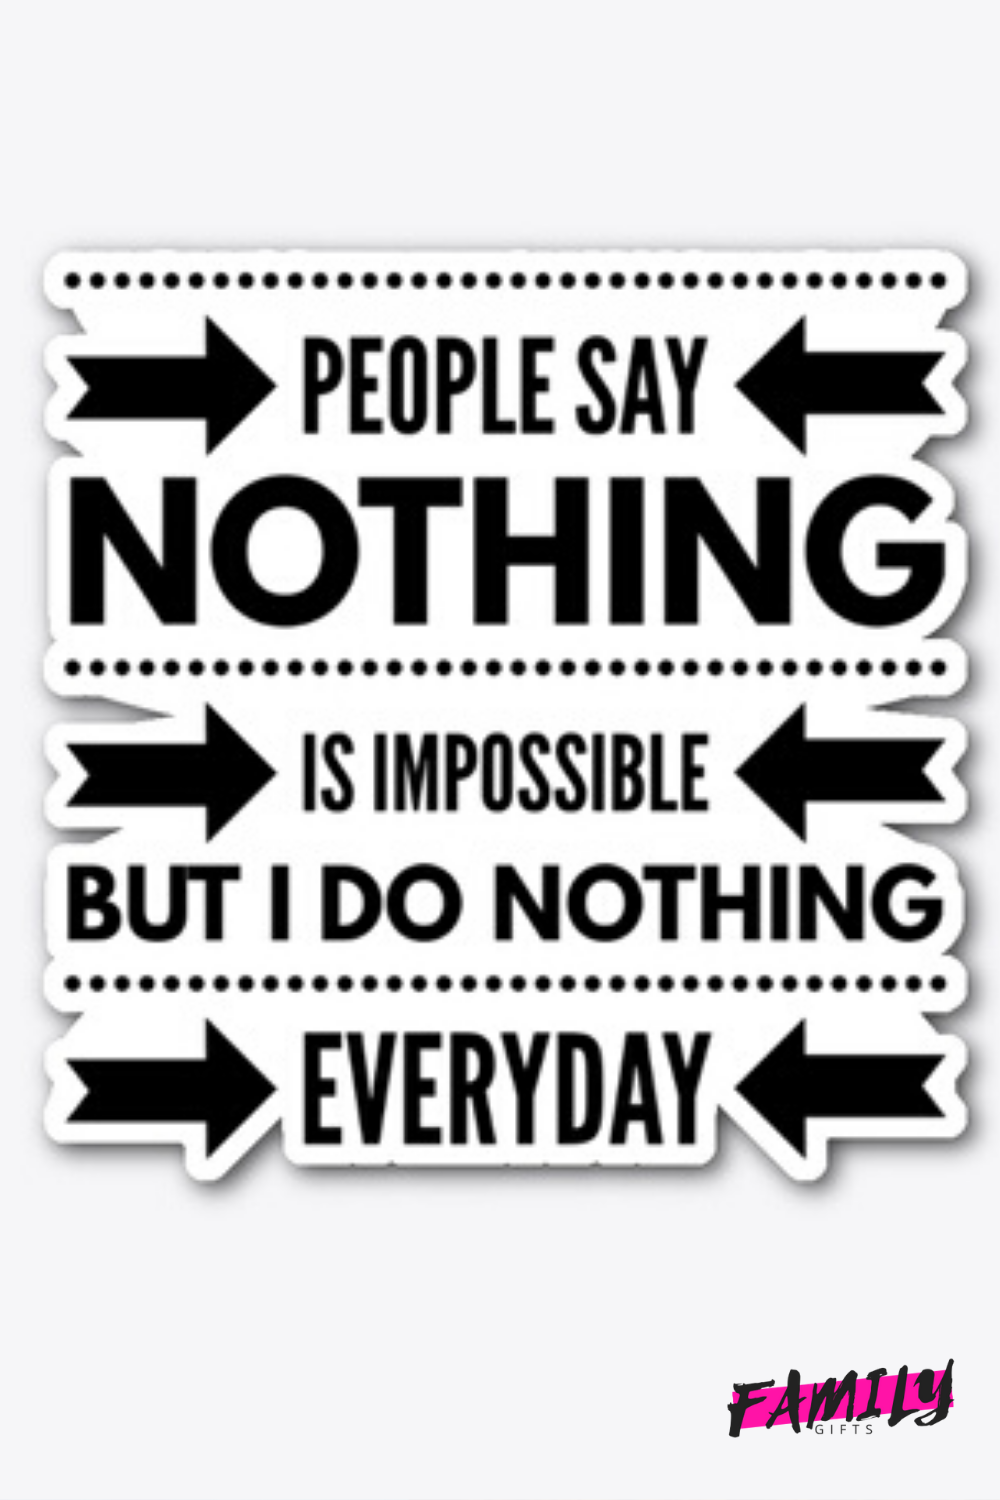 People Say Nothing Is Impossible But I Do Nothing Everyday Funny Life Quotes Funny Quotes About Life Life Quotes Sayings